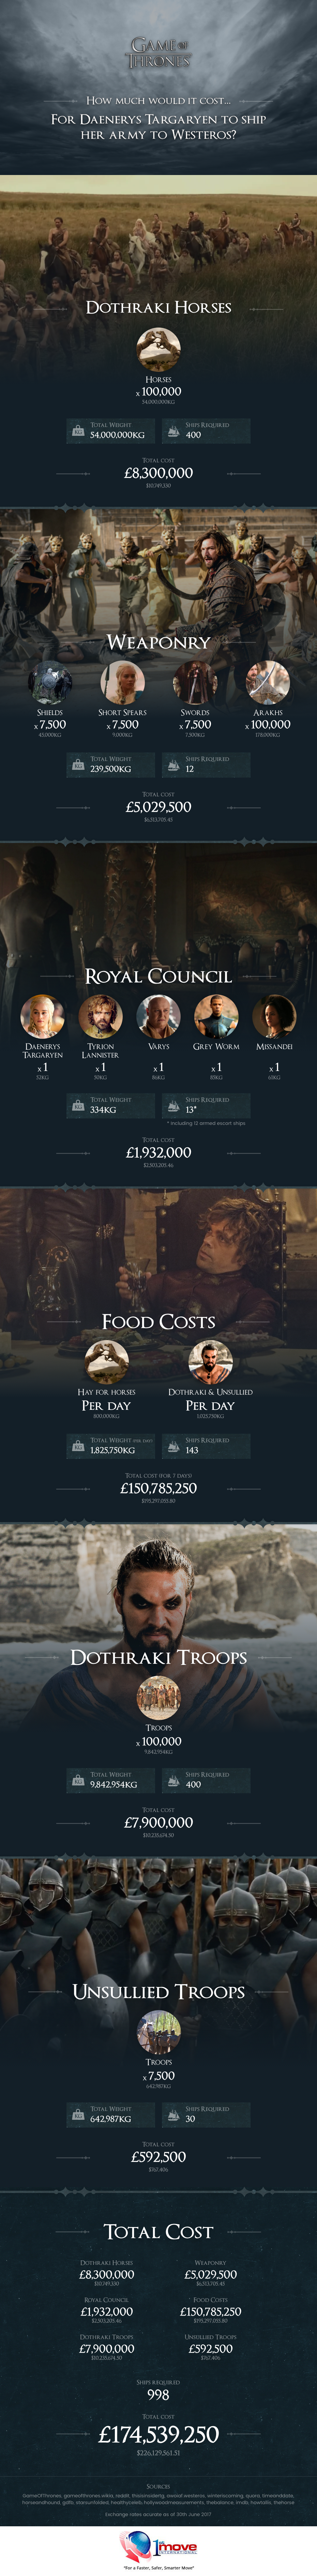 How Much Would it Cost to Ship Daenerys' Army? by 1st Move International